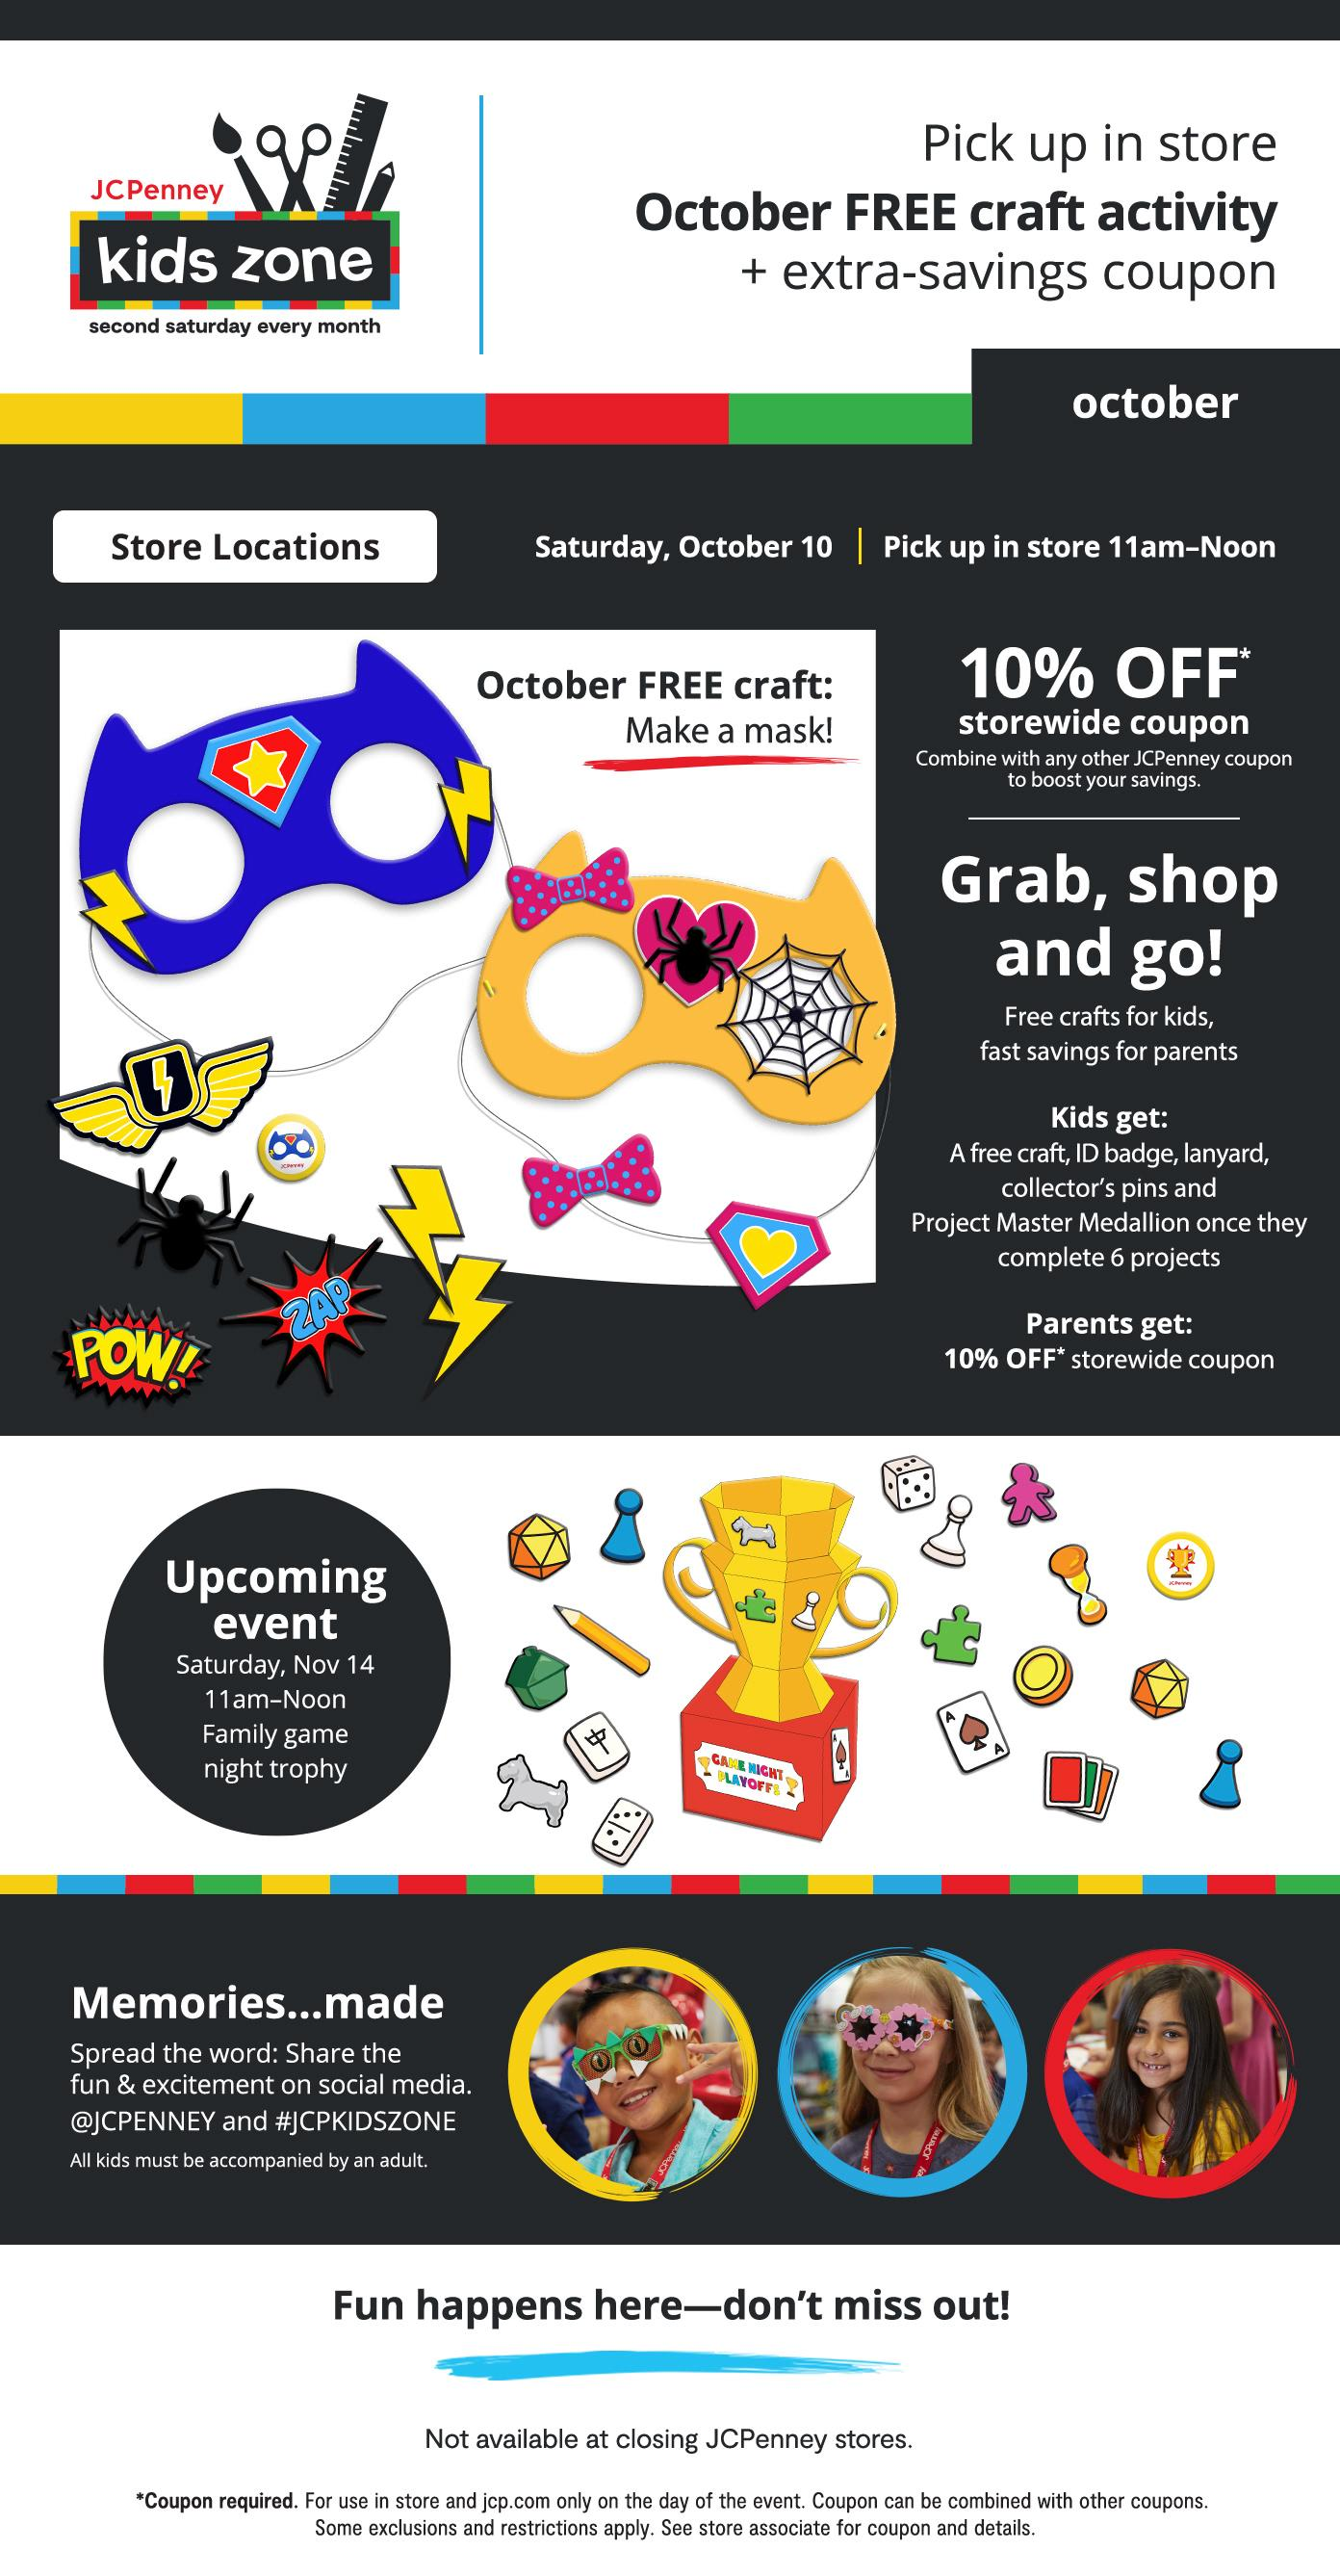 Kids Zone every 2nd Saturday. Oct 10th pick up craft and coupon. Grab, Shop and Go. 11am to noon